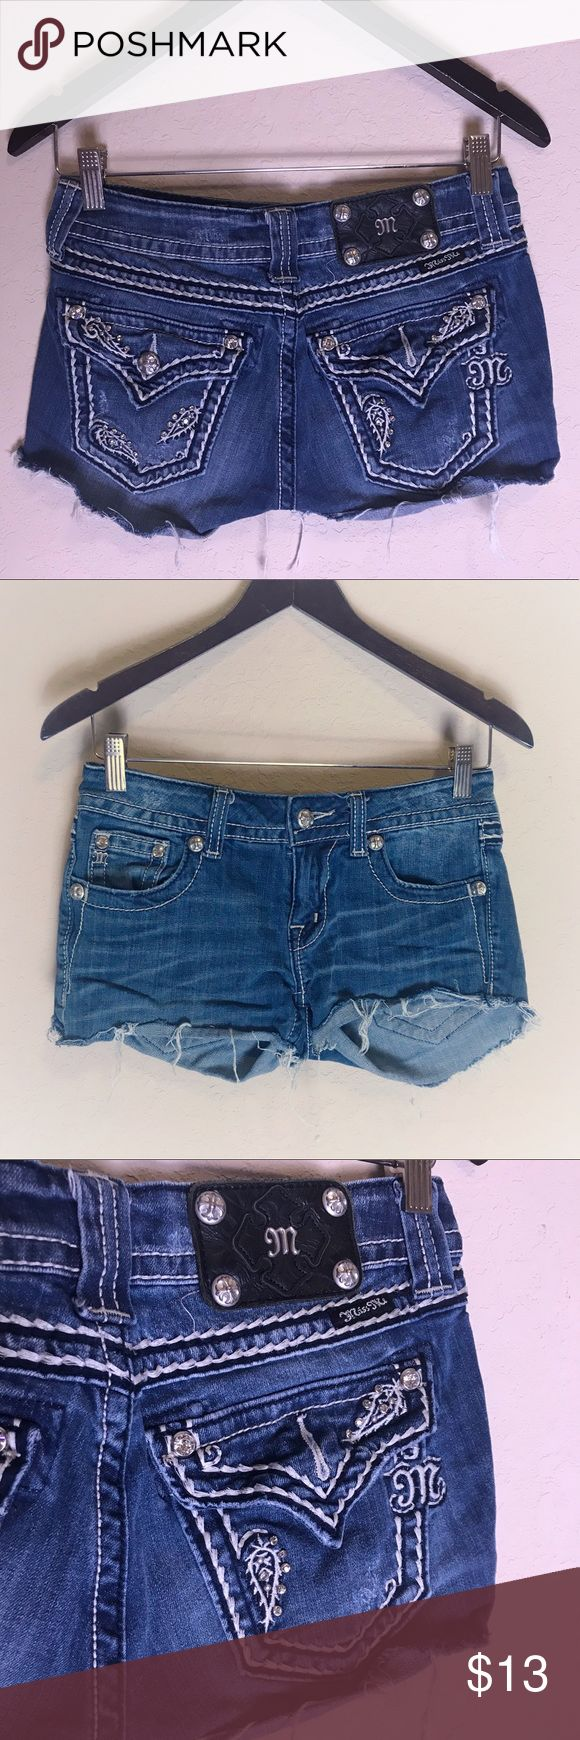 Miss Me Shorts size 27 custom made from jeans Miss Me Shorts size 27 custom made…